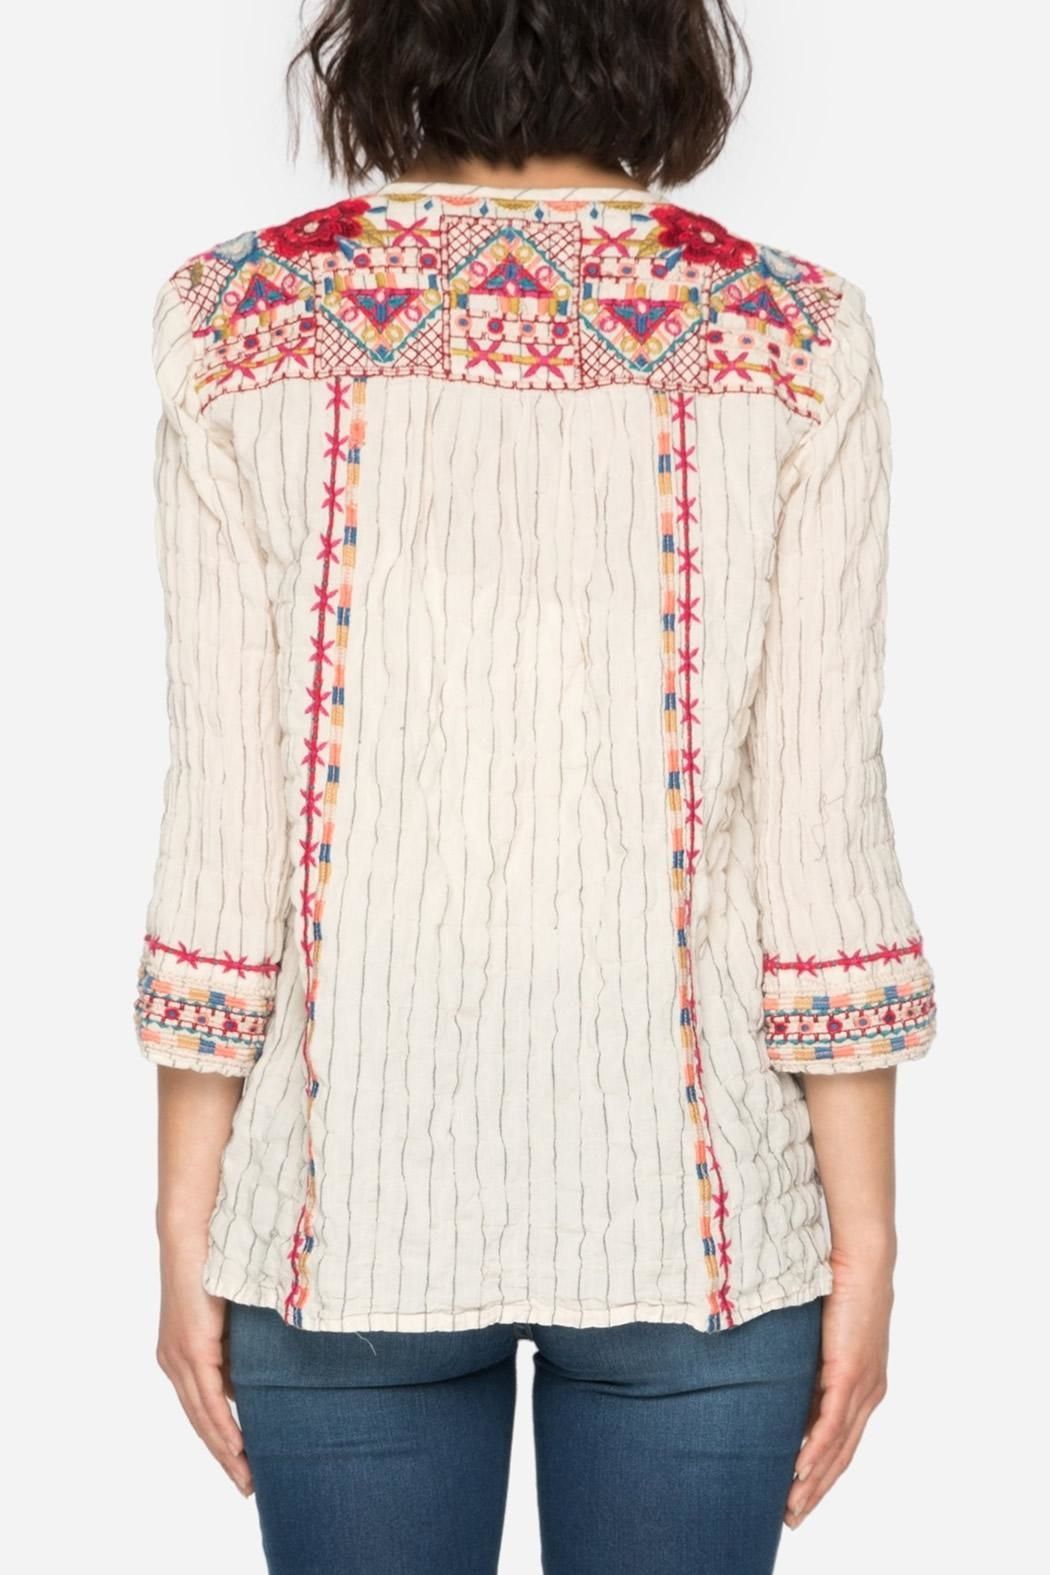 Johnny Was Kealan Boho Shirt - Front Full Image